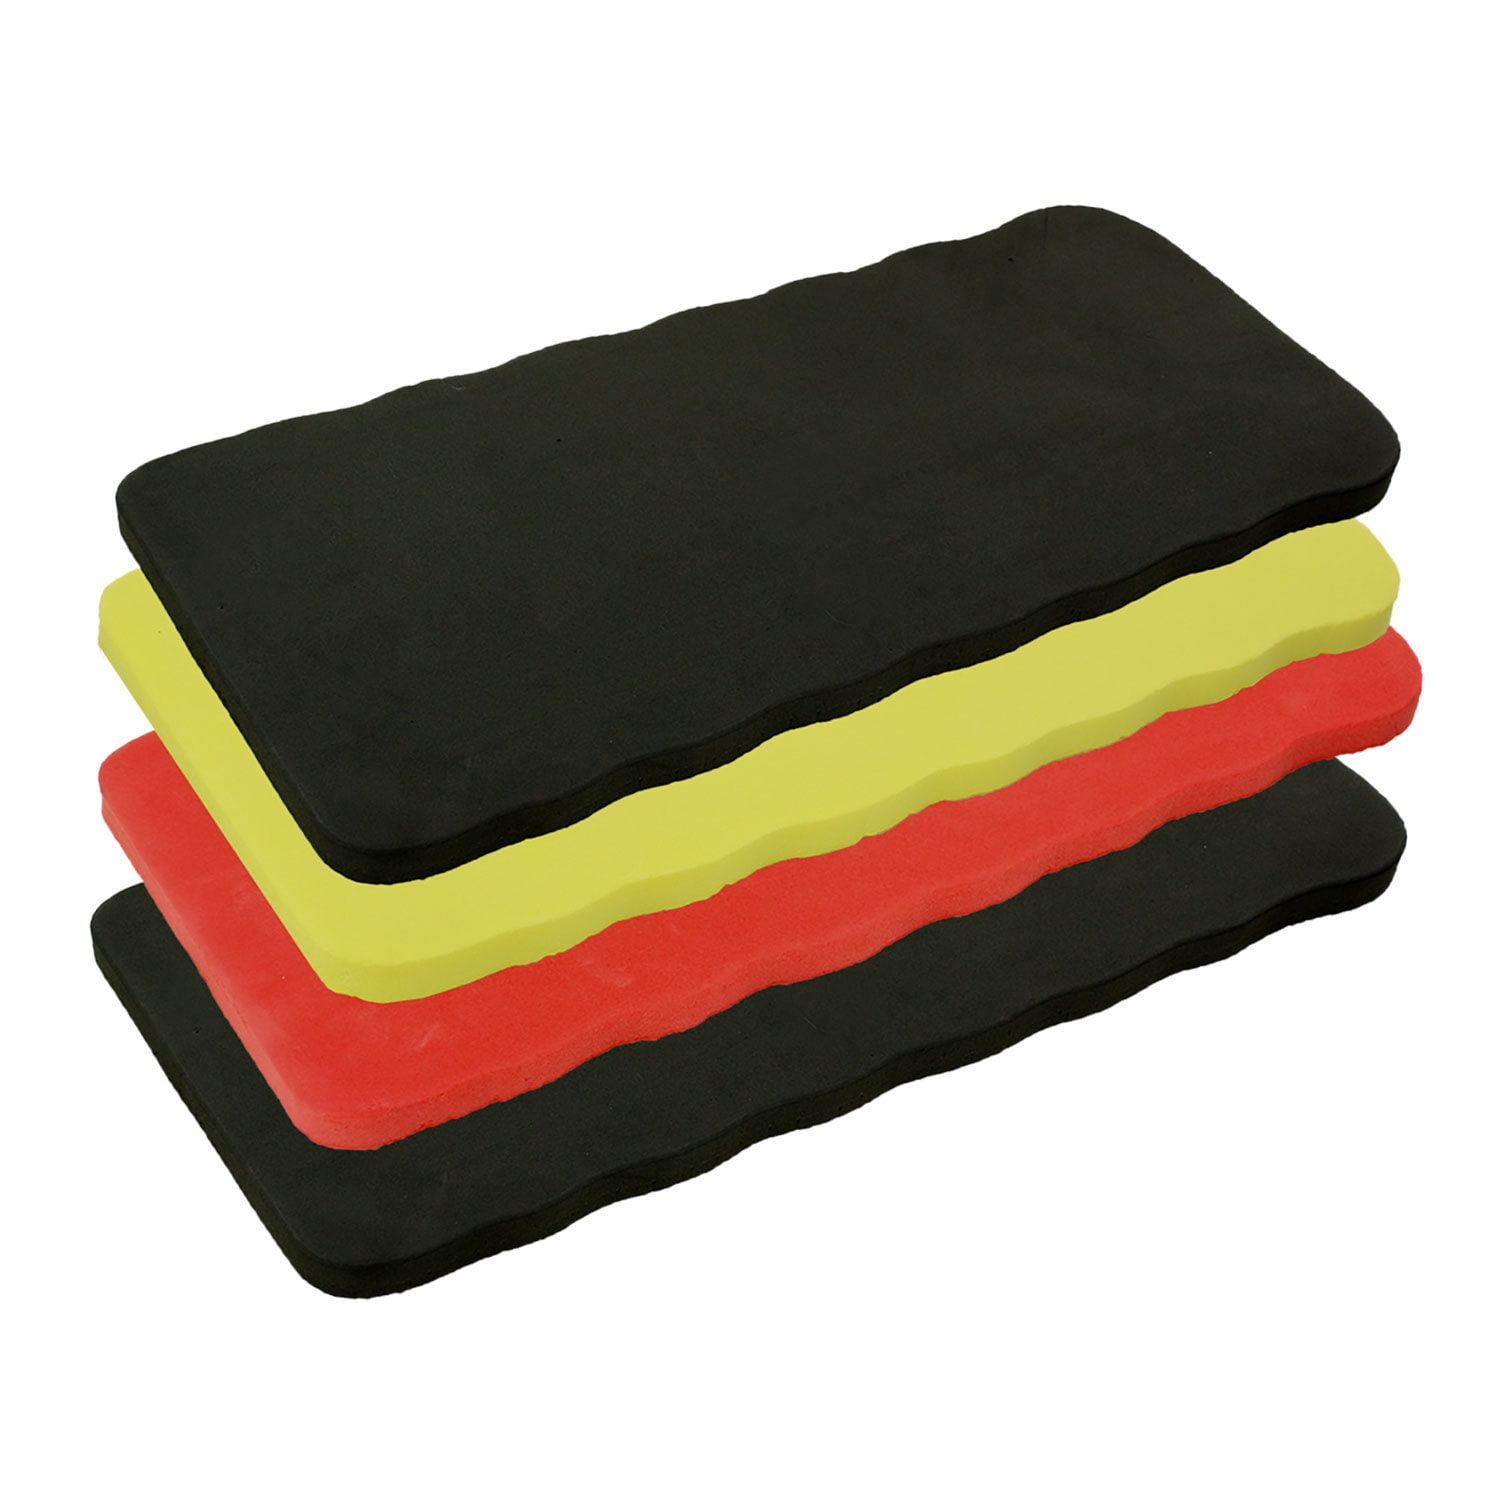 Details About Good Old Values Foam Rubber 7 Inch X 15 Kneeling Pad And Seat Cushion Pack